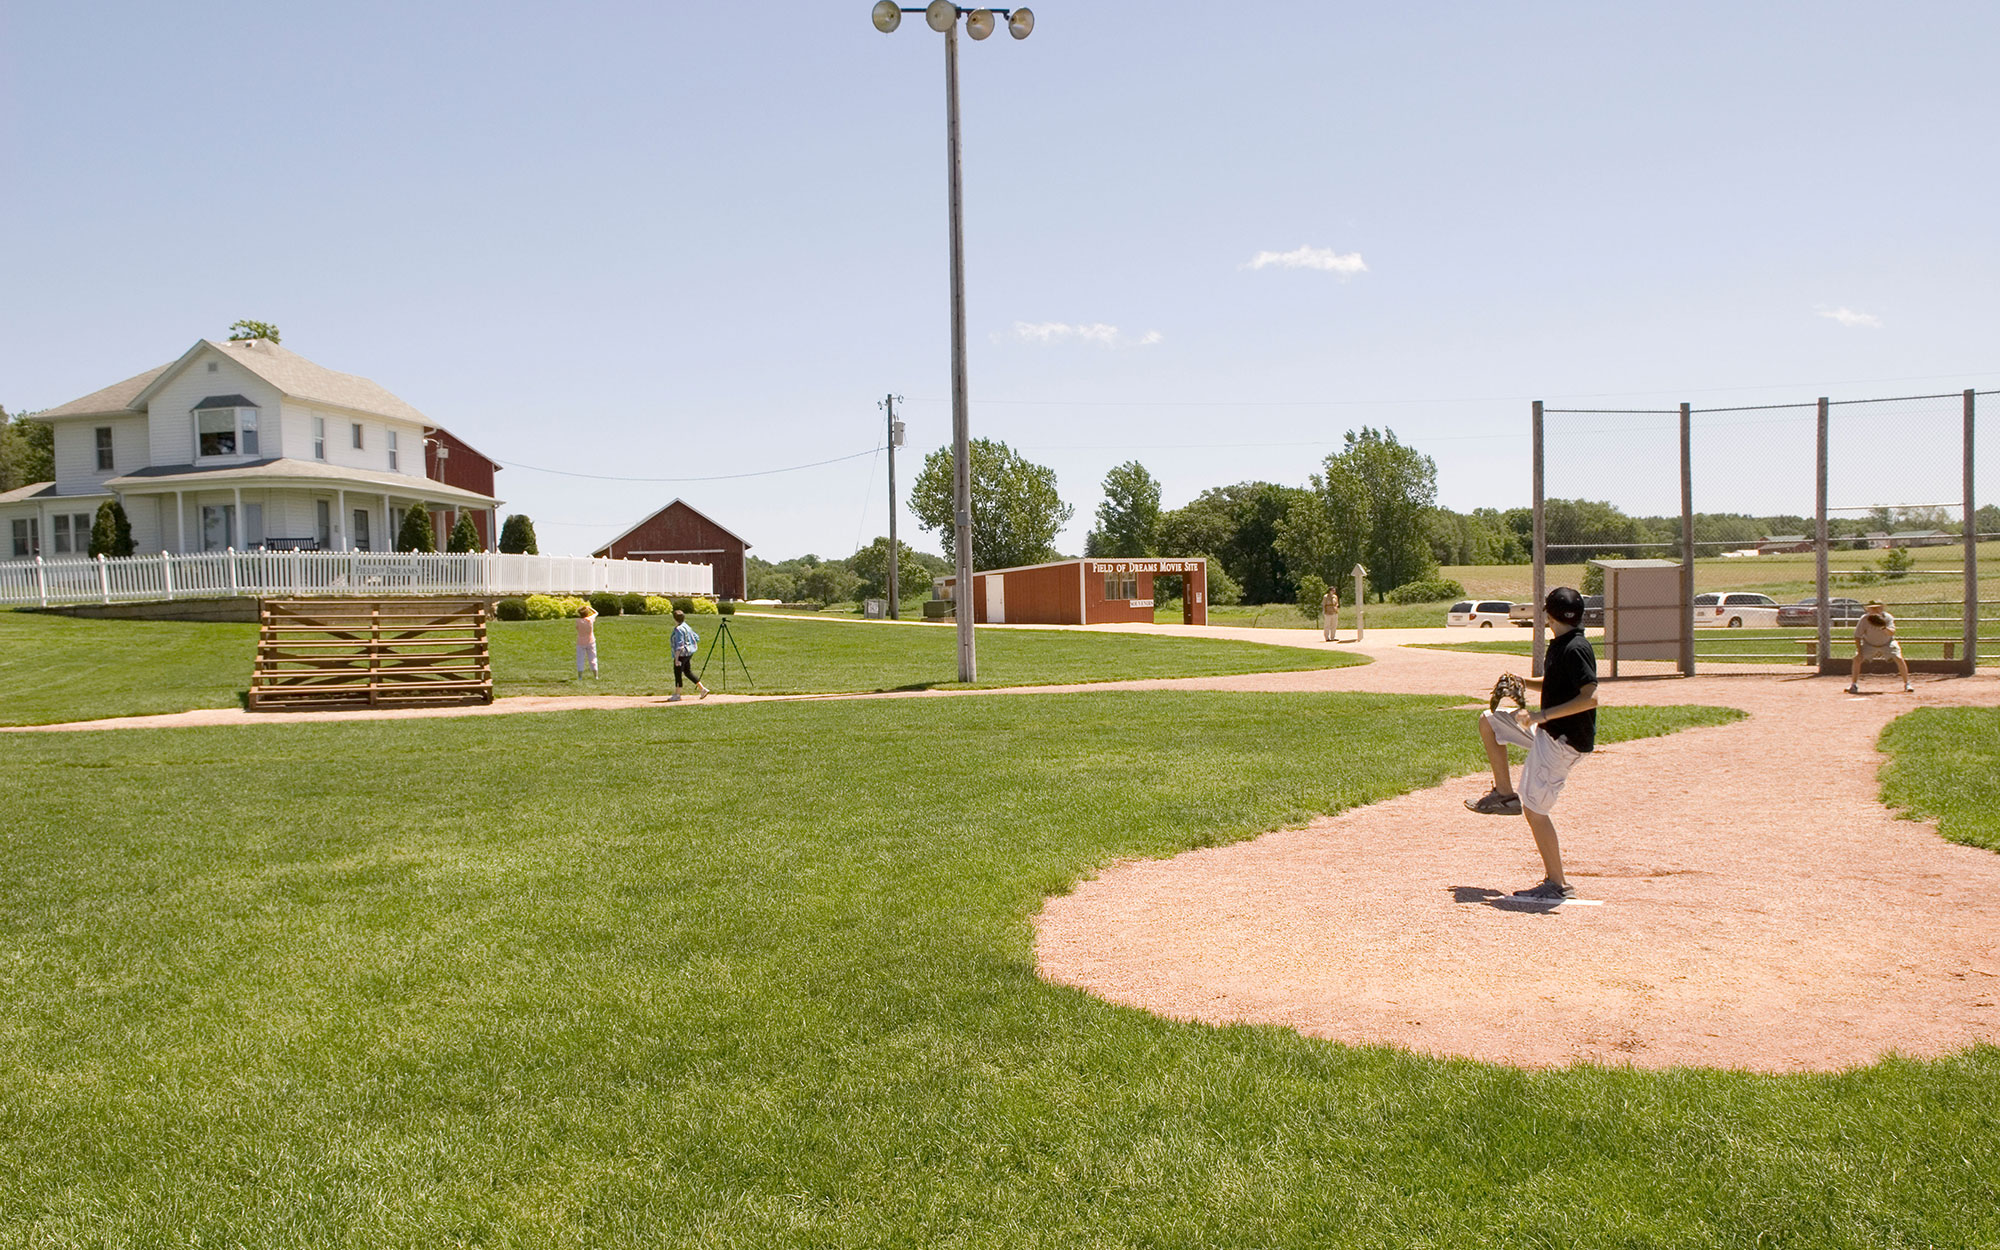 Abandoned Movie Sets You Can Still Visit: Field of Dreams' Baseball Field in Dubuque County, Iowa